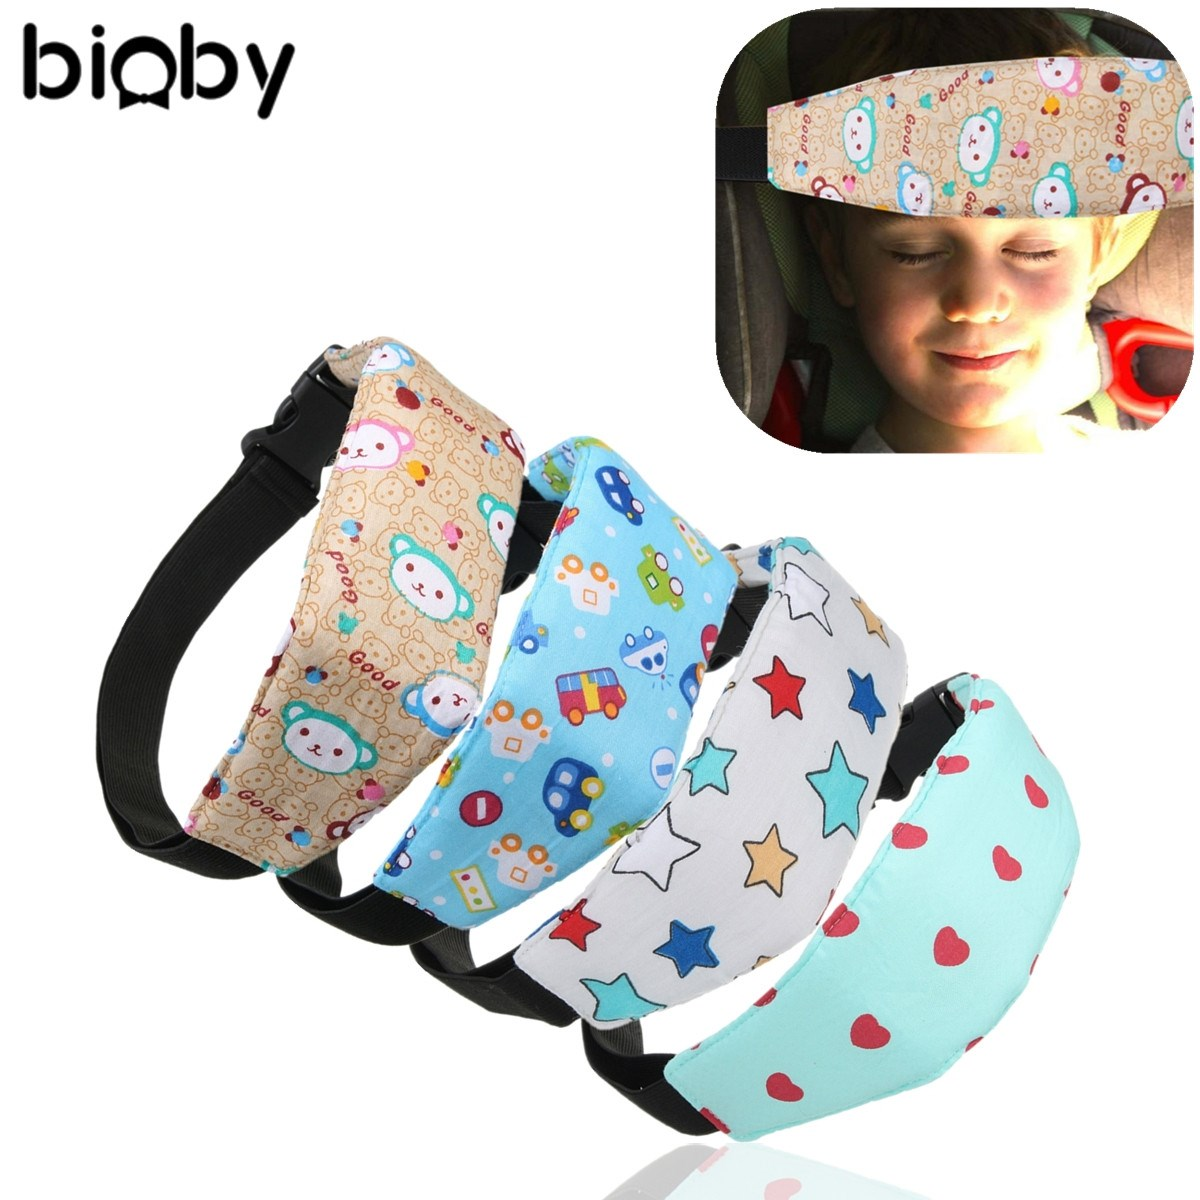 Bbay Infant Auto Car Seat Support Belt Safety Sleep Aid Head Holder For Kids Child Baby Sleeping Safety Accessories Baby Care